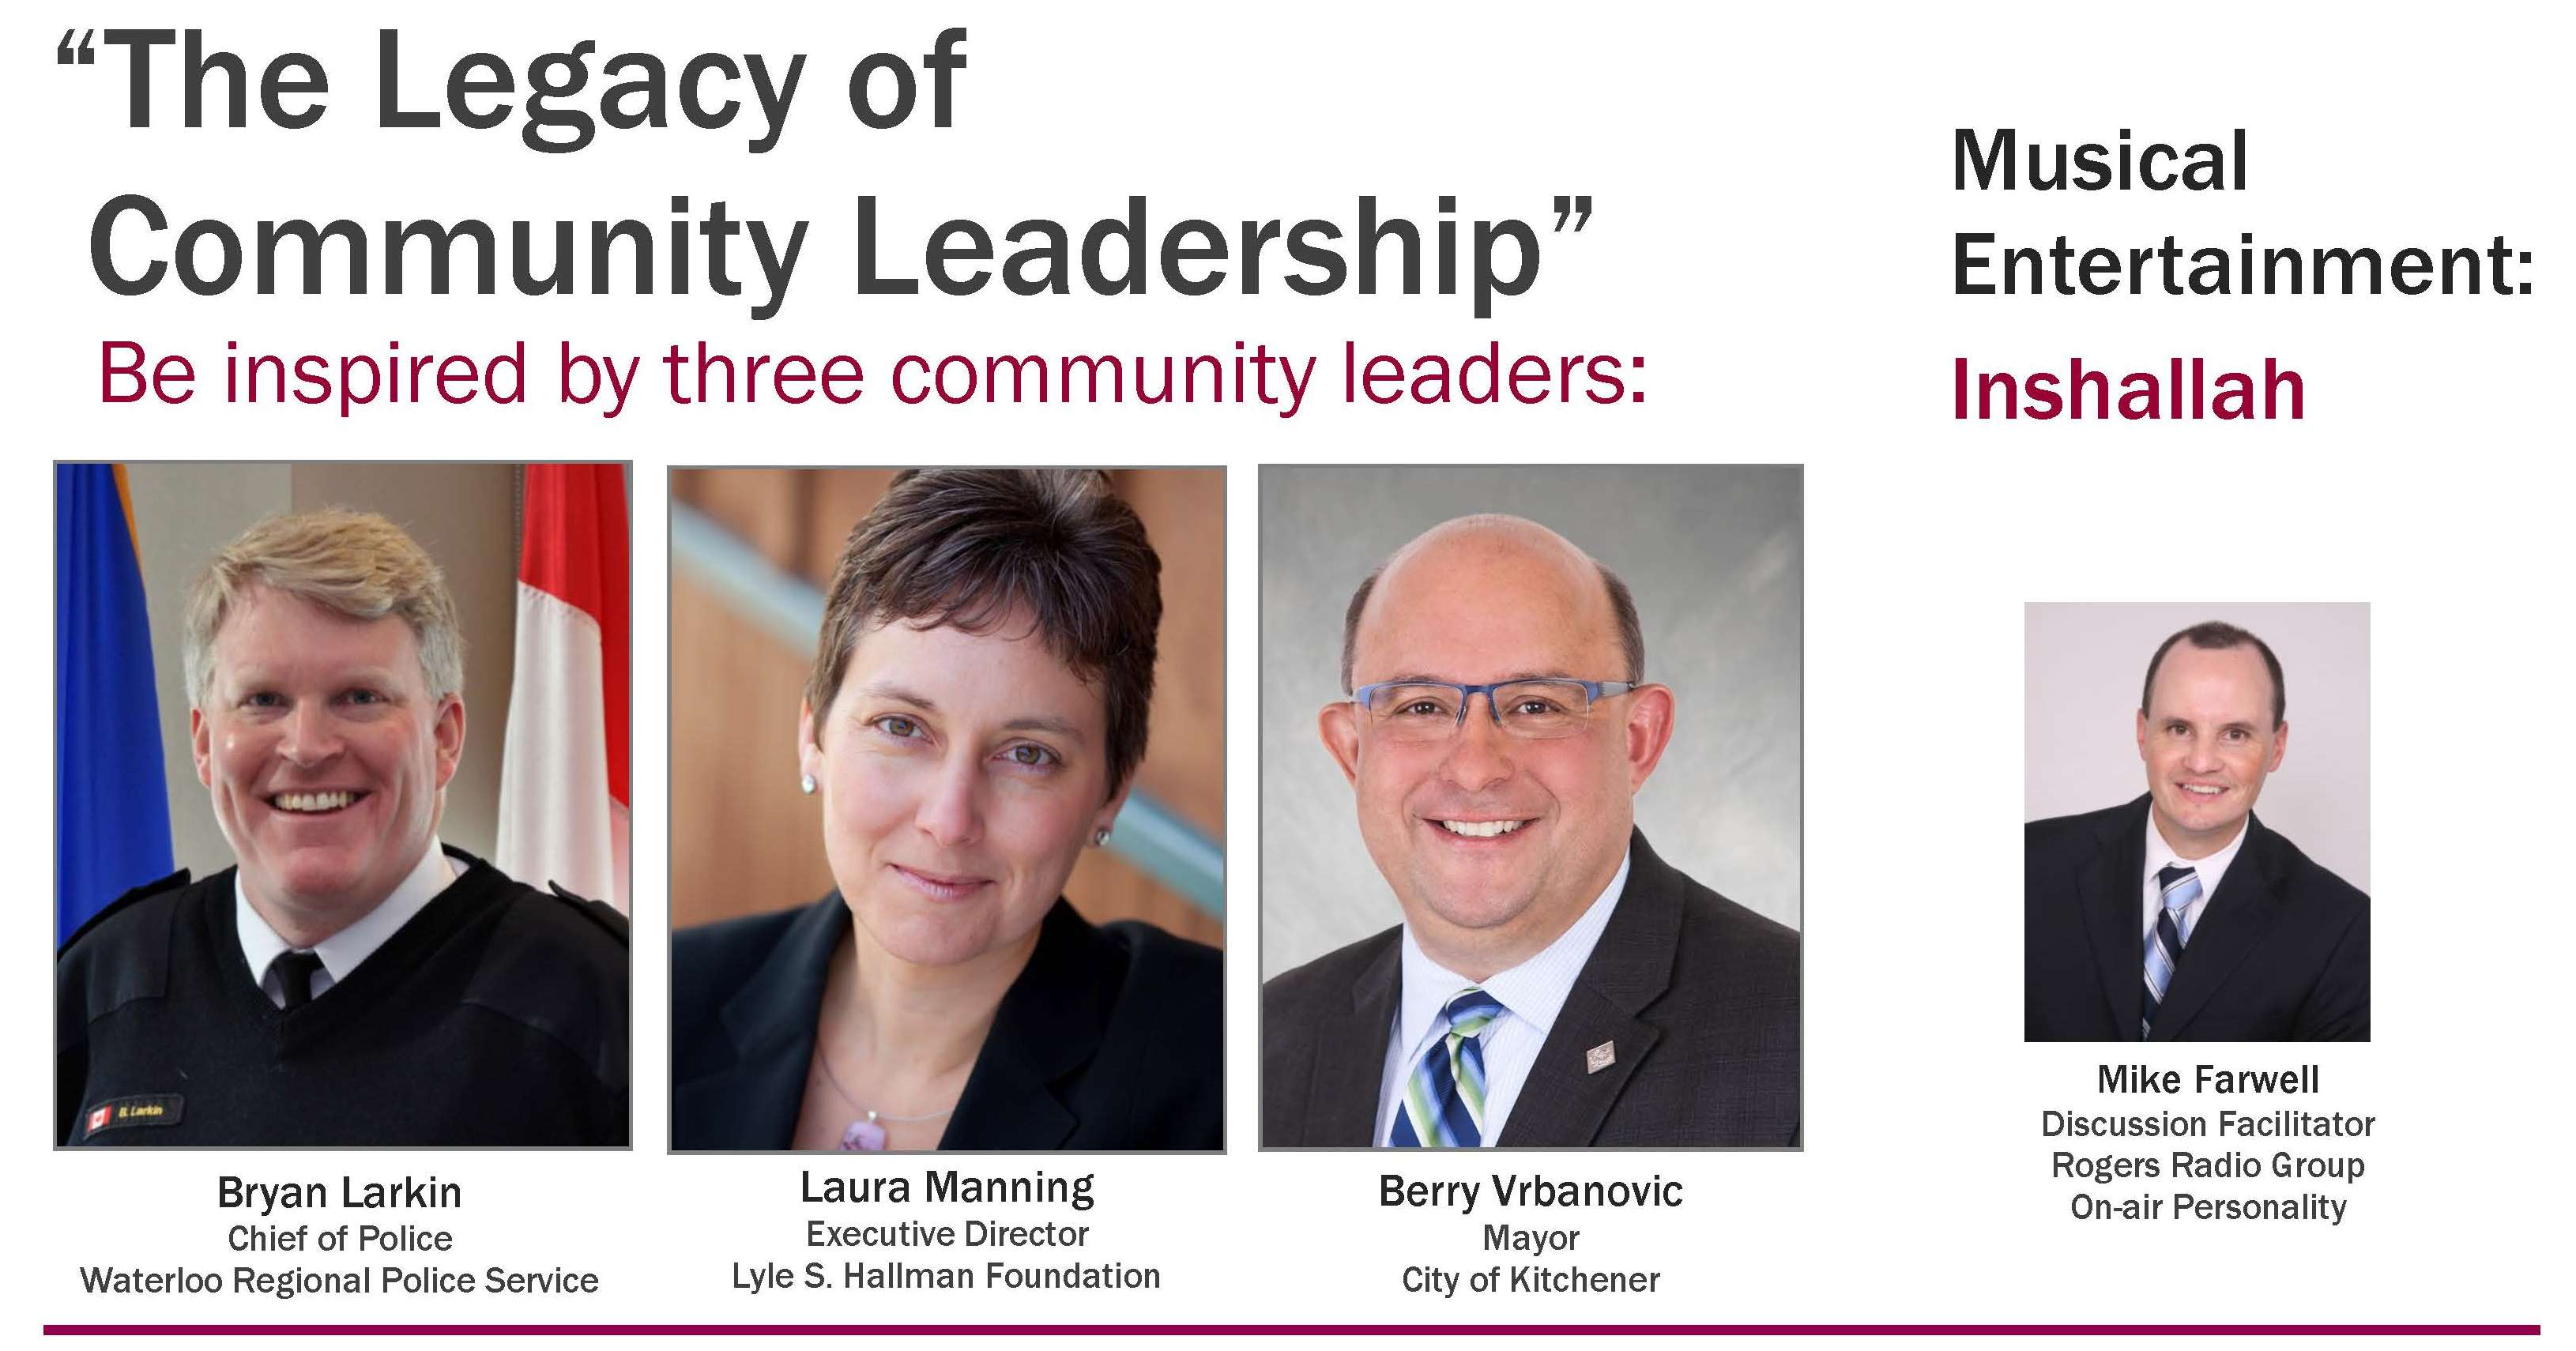 Be inspired by 3 Community Leaders